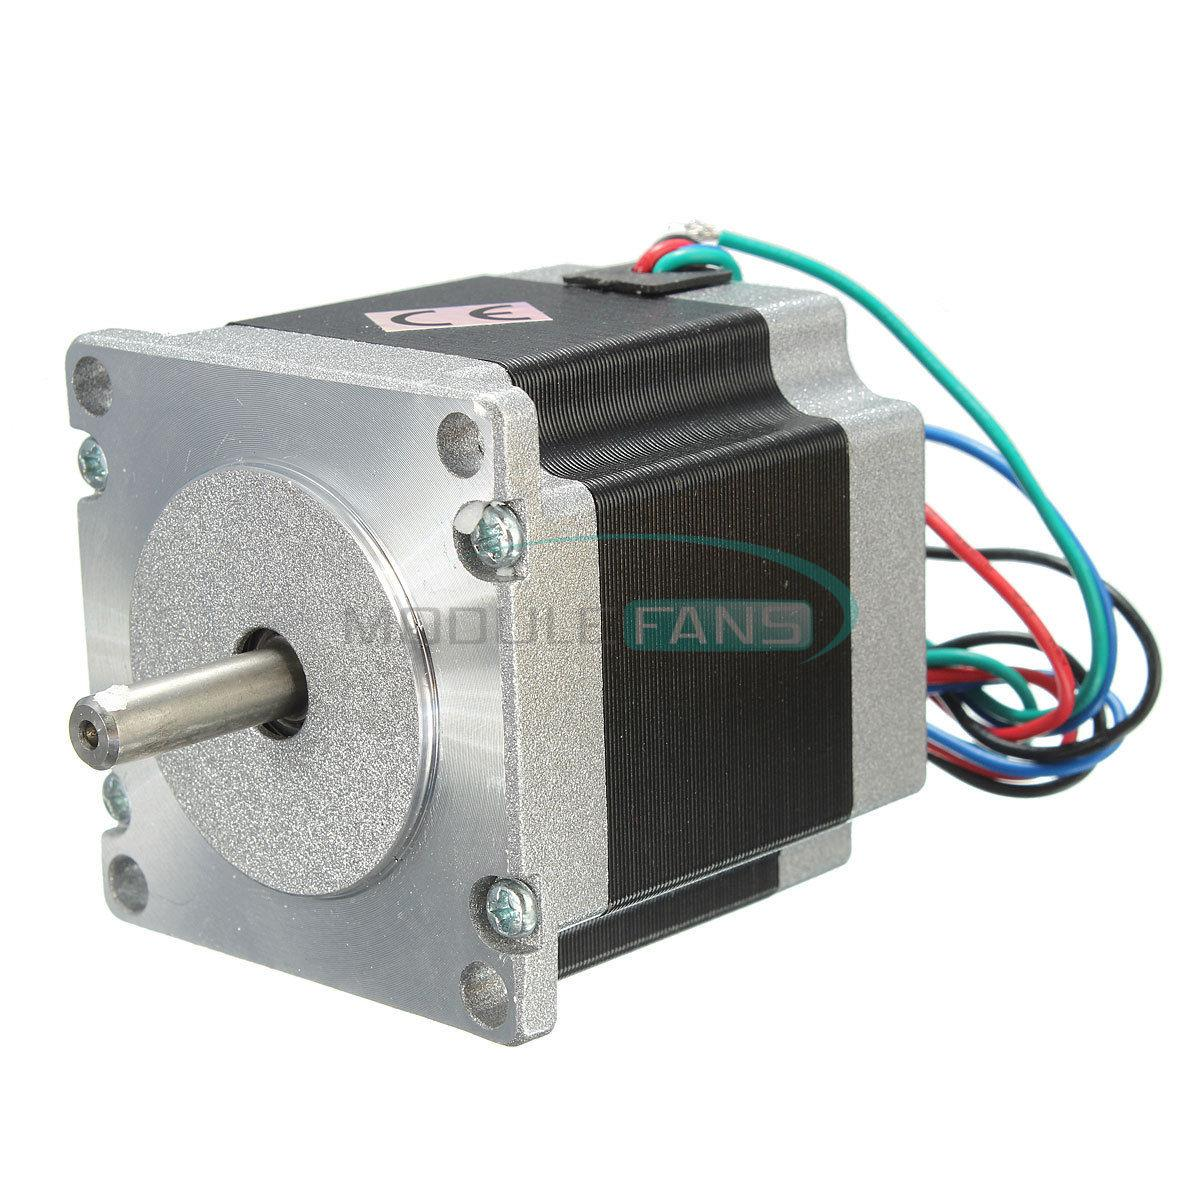 DC 24V Stepper Motor for Nema 23(57BYGH420) Single Shaft 12.6Kgcm 56mm 1.8Degree